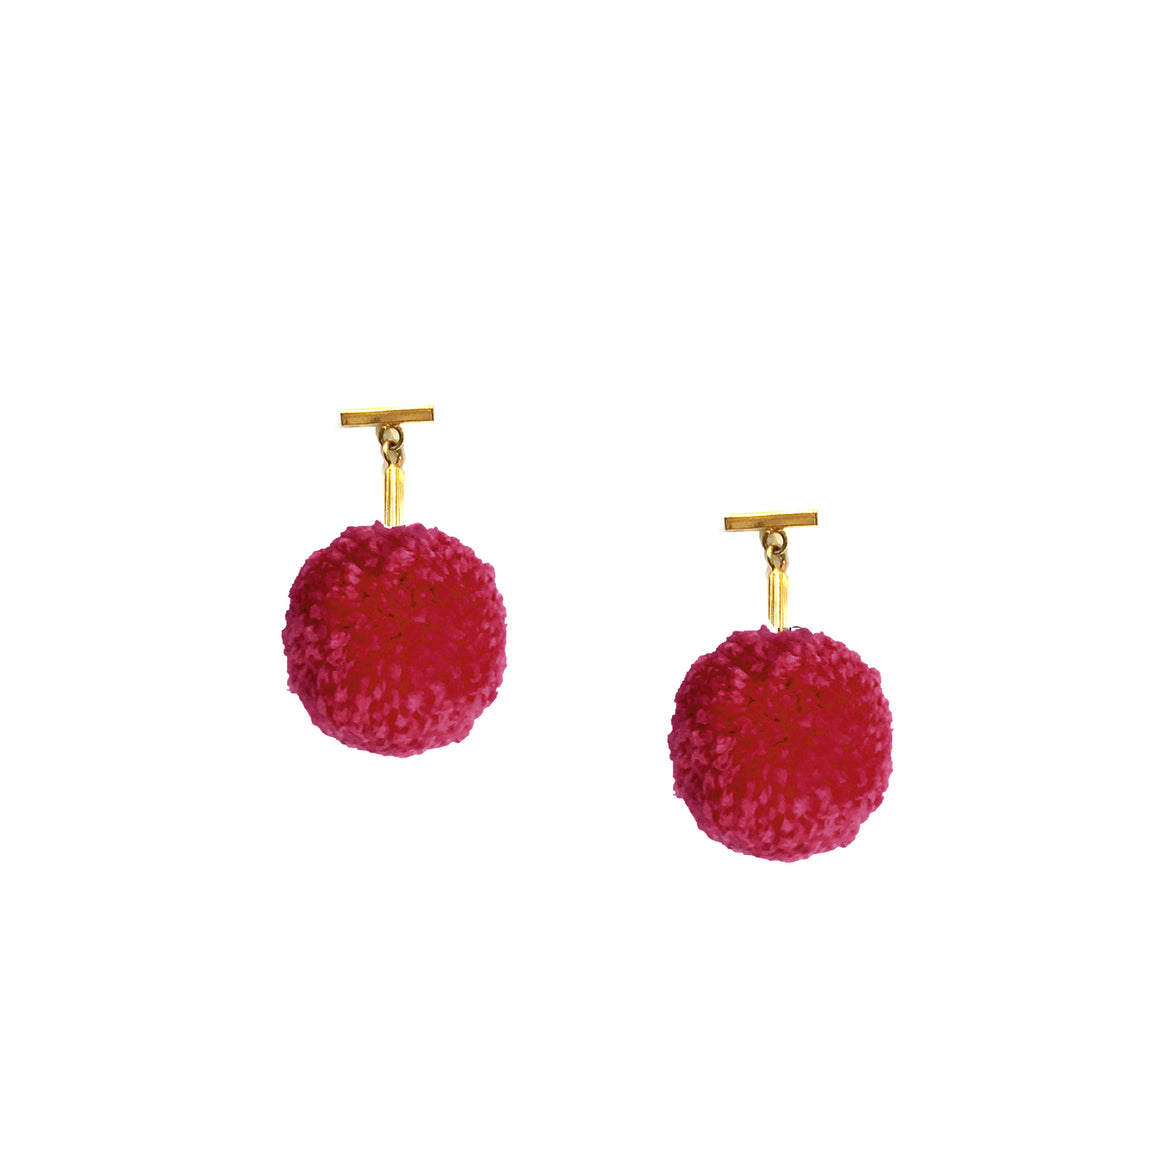 "Cranberry 1"" Yarn Pom Pom T Stud Earrings, Earrings, Tuleste, Tuleste"